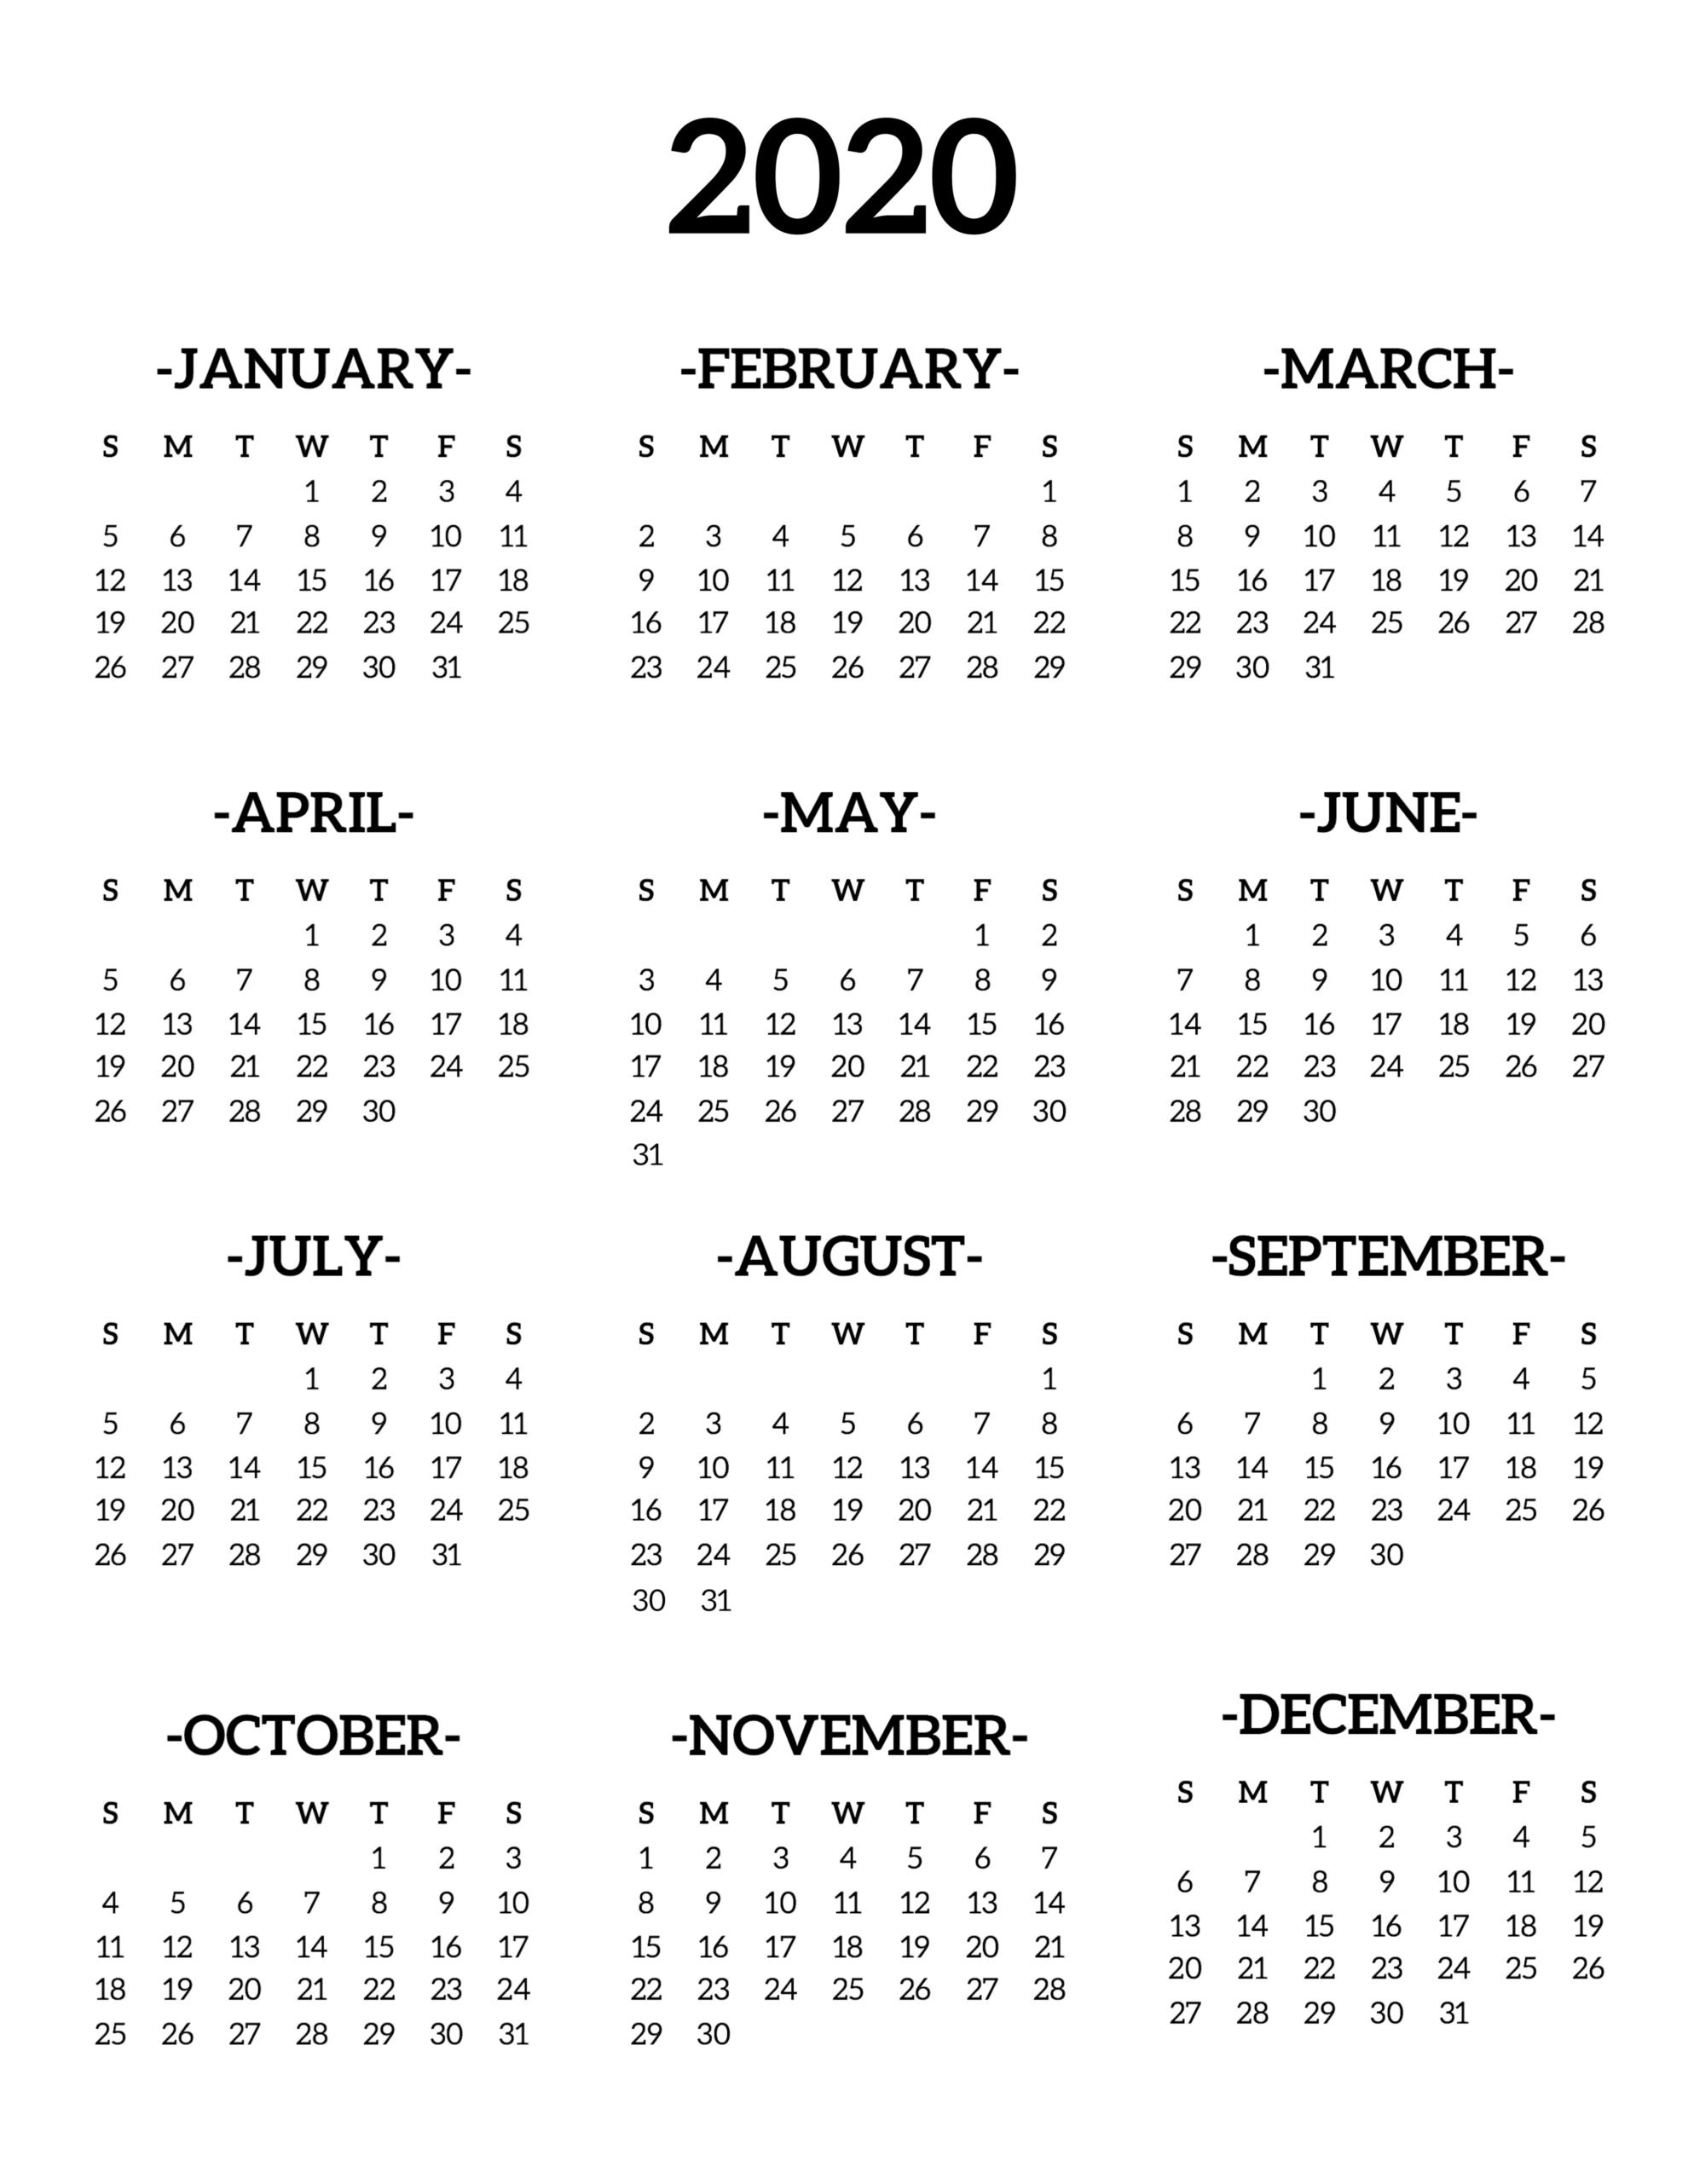 2020 Year At A Glance Printable Calendar - Wpa.wpart.co-2020 Month At A Glance Calendar Template